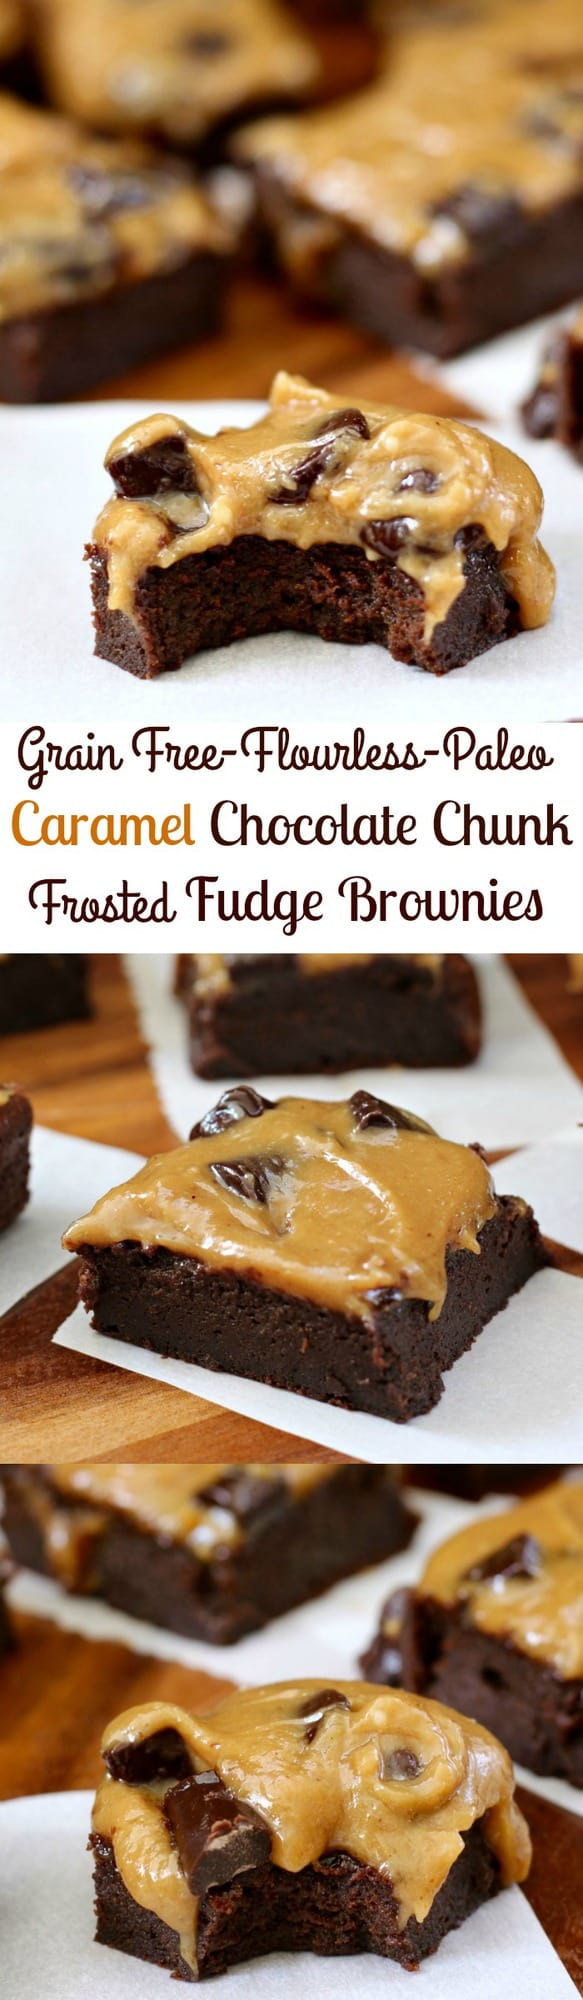 Flourless Paleo Caramel Chocolate Chunk Frosted Fudge Brownies - rich flourless dairy free fudge brownies with a creamy caramel chocolate chunk frosting!